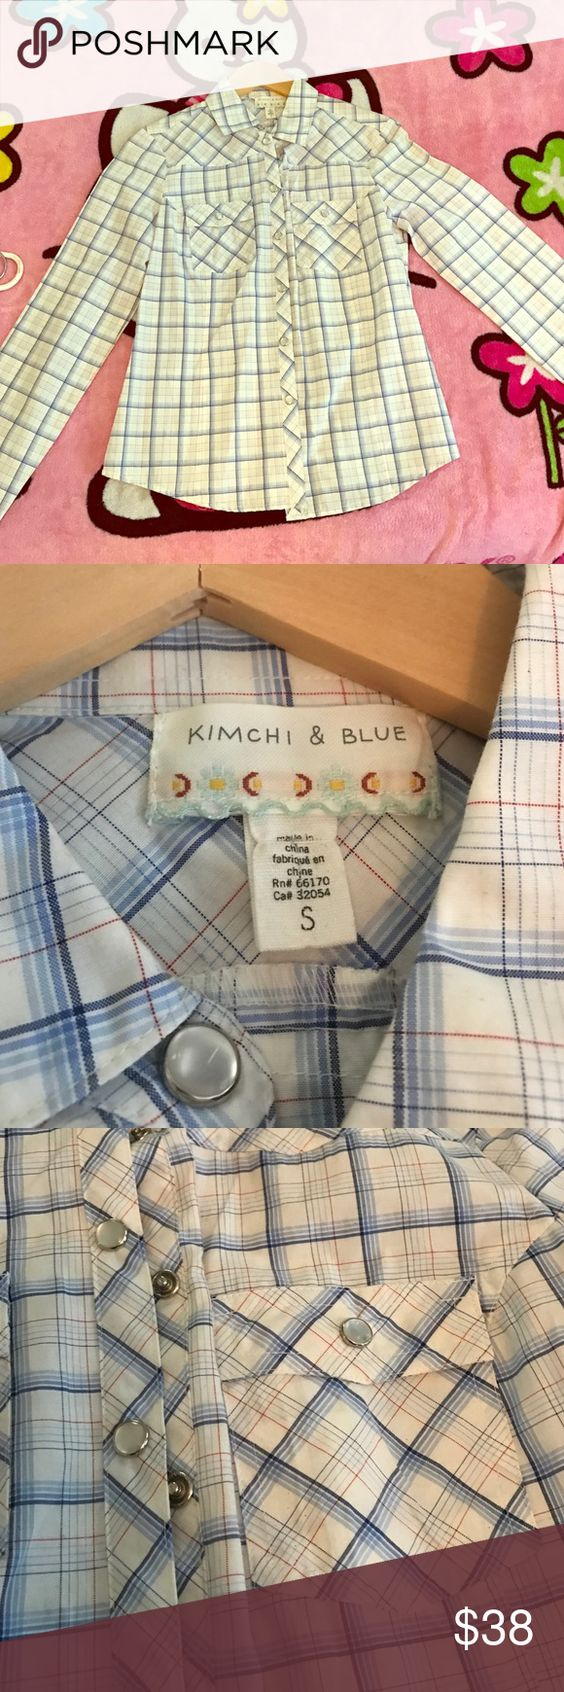 Kimchi & blue woven button up dress shirt White and baby blue with pearl snap buttons, light weight material. New never worn Kimchi Blue Tops Button Down Shirts